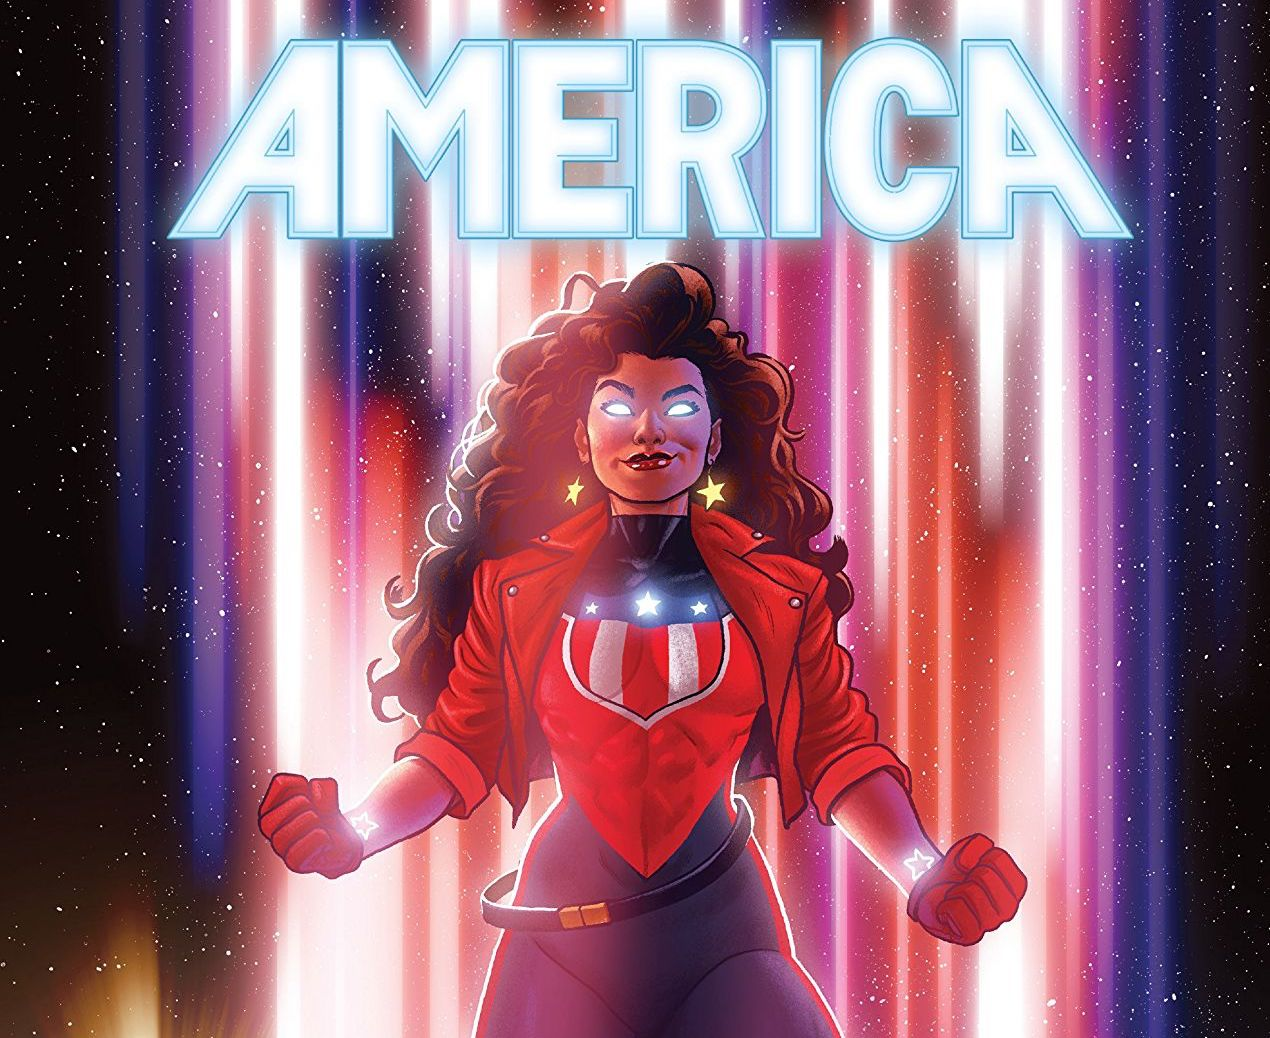 The last chapter in 'America' has arrived in this Vol. 2 trade paperback.